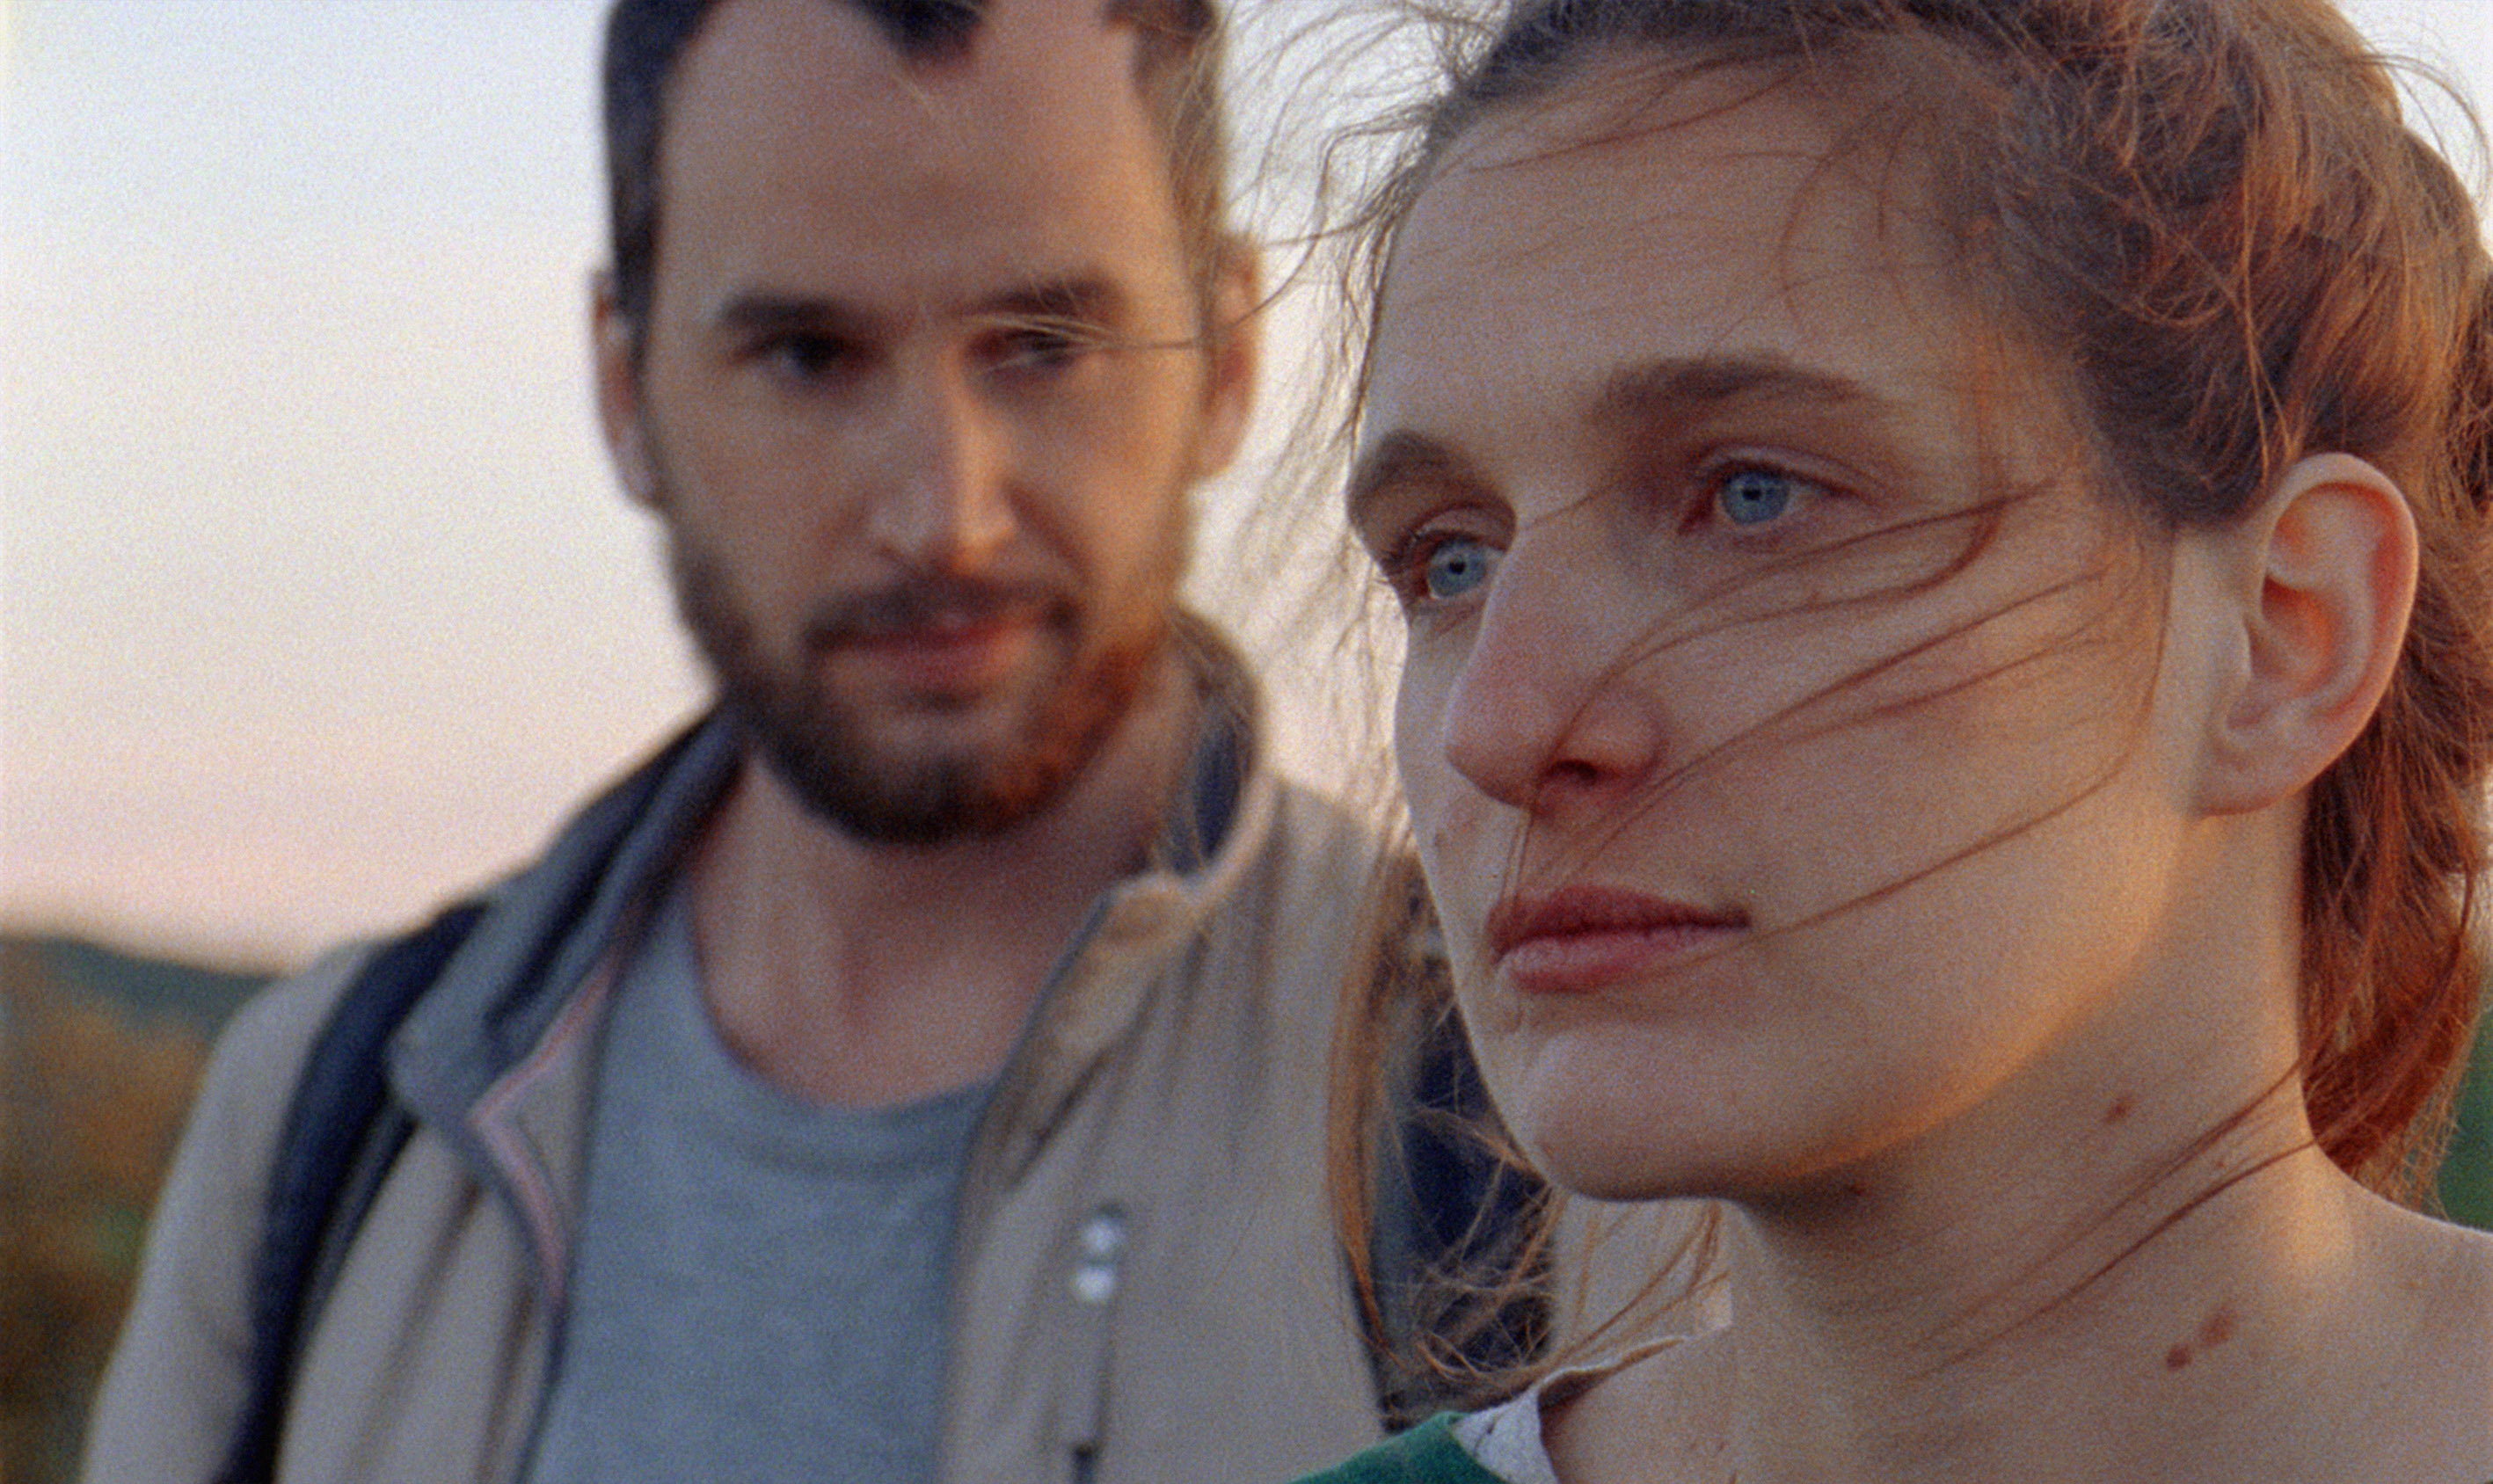 Camille Genaud and Ludovic Chazaud in Le mal du citron (2014)